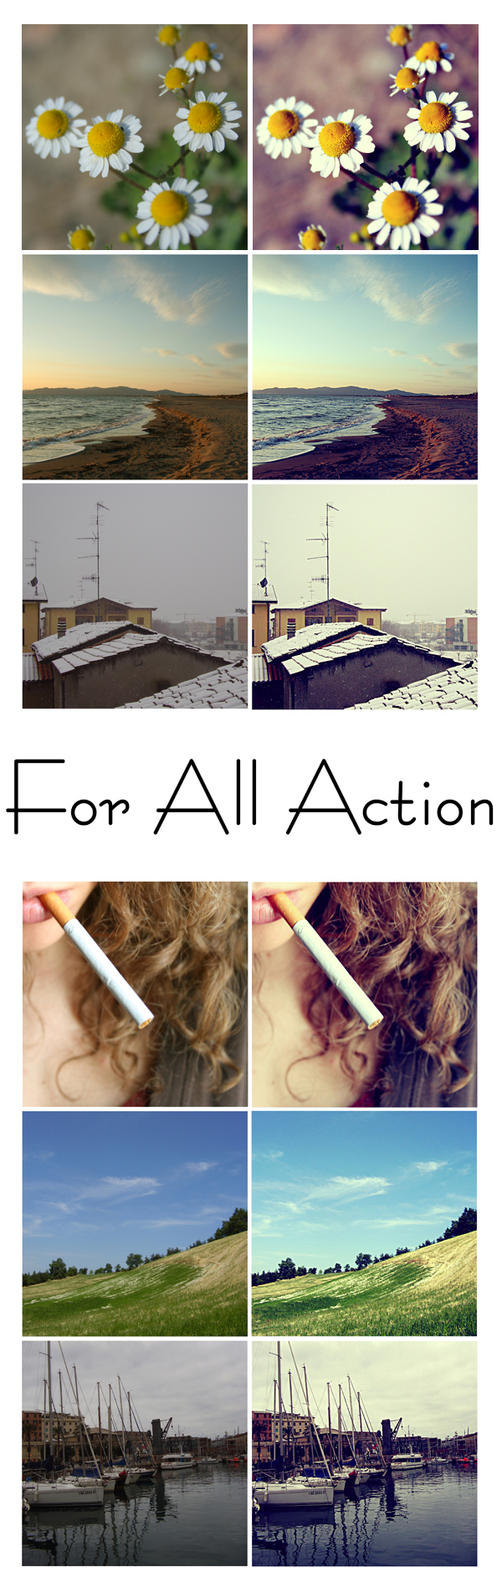 [Download]For all action For_all_action__by_smokedval